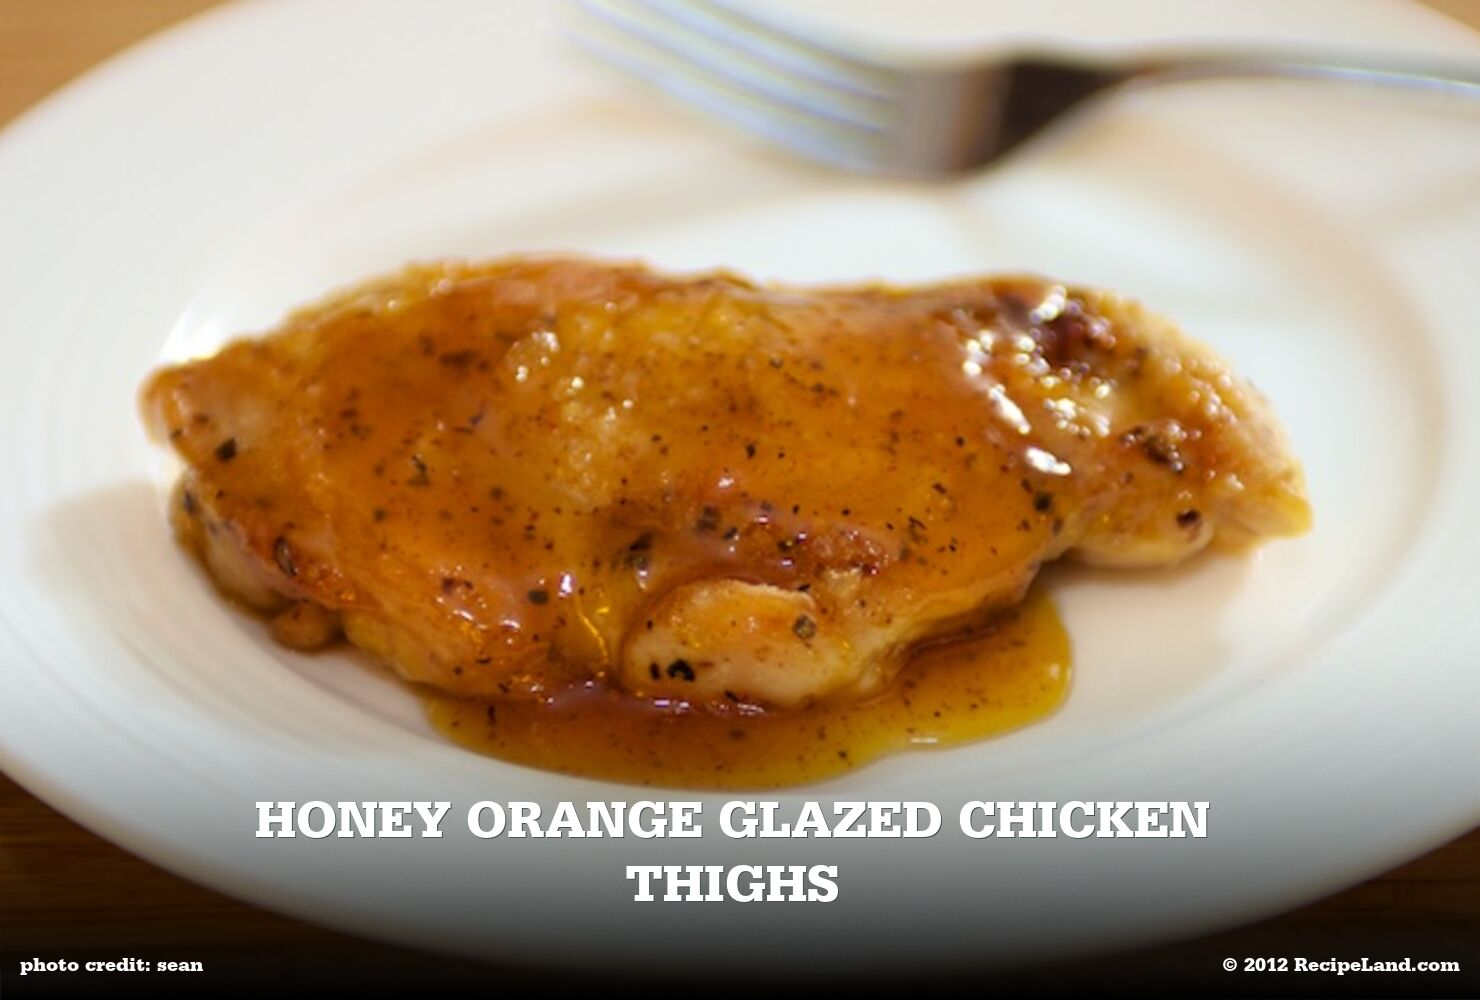 Honey Orange Glazed Chicken Thighs